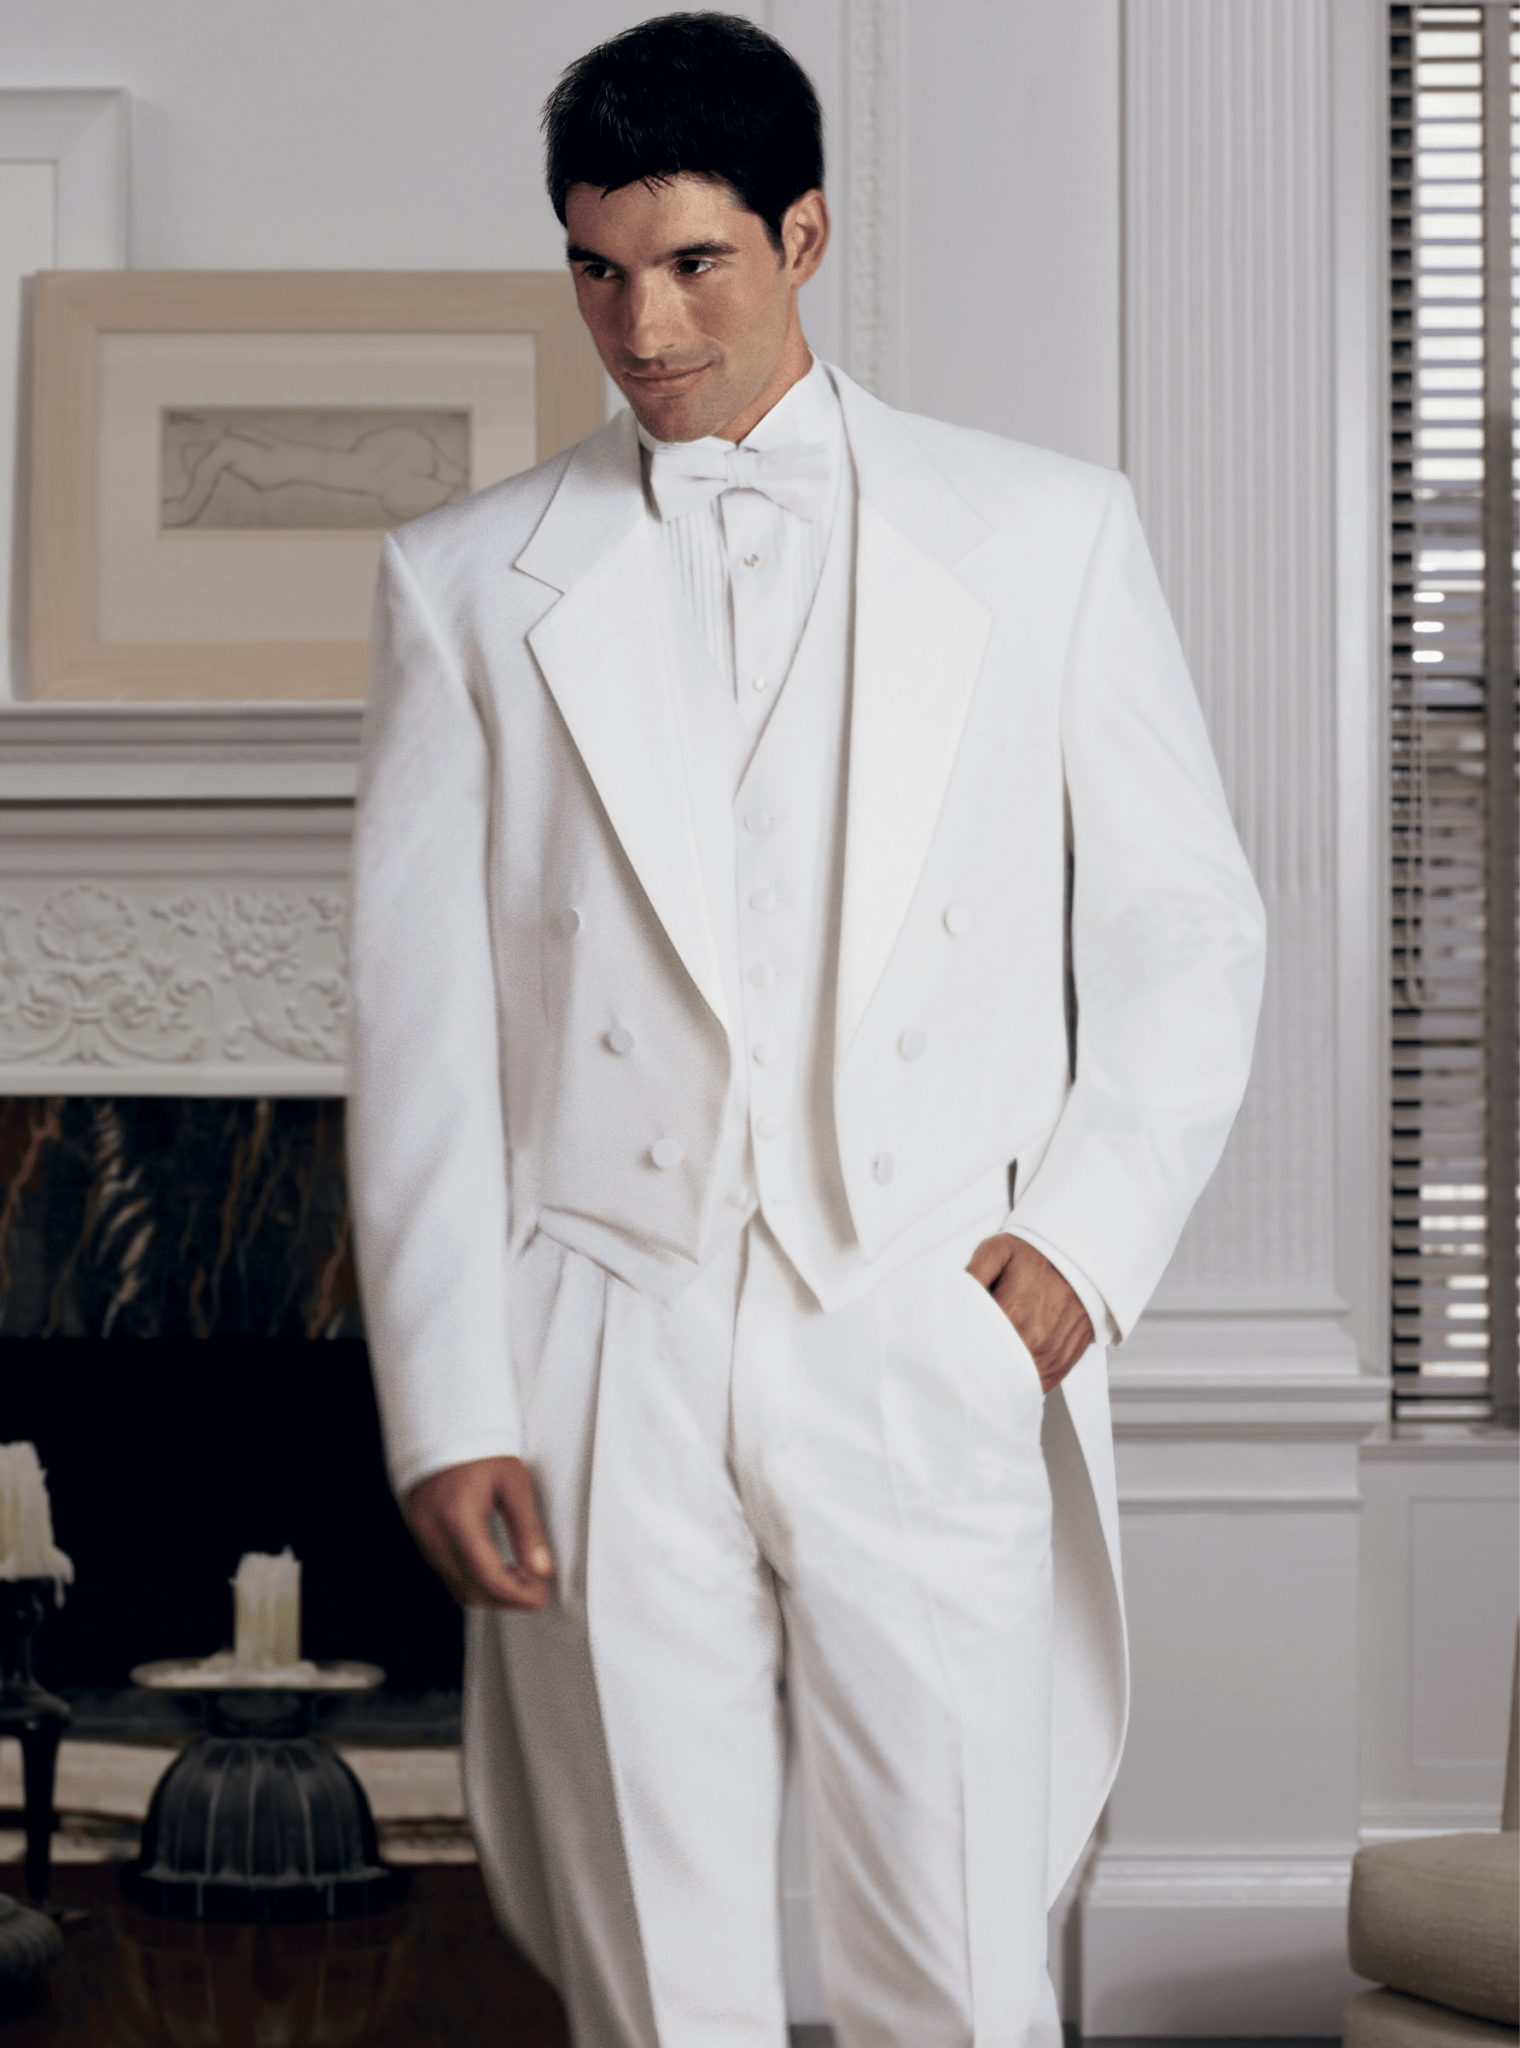 Tuxedos & Suits | Regal Tuxedo - Knoxville Tuxedo Rentals